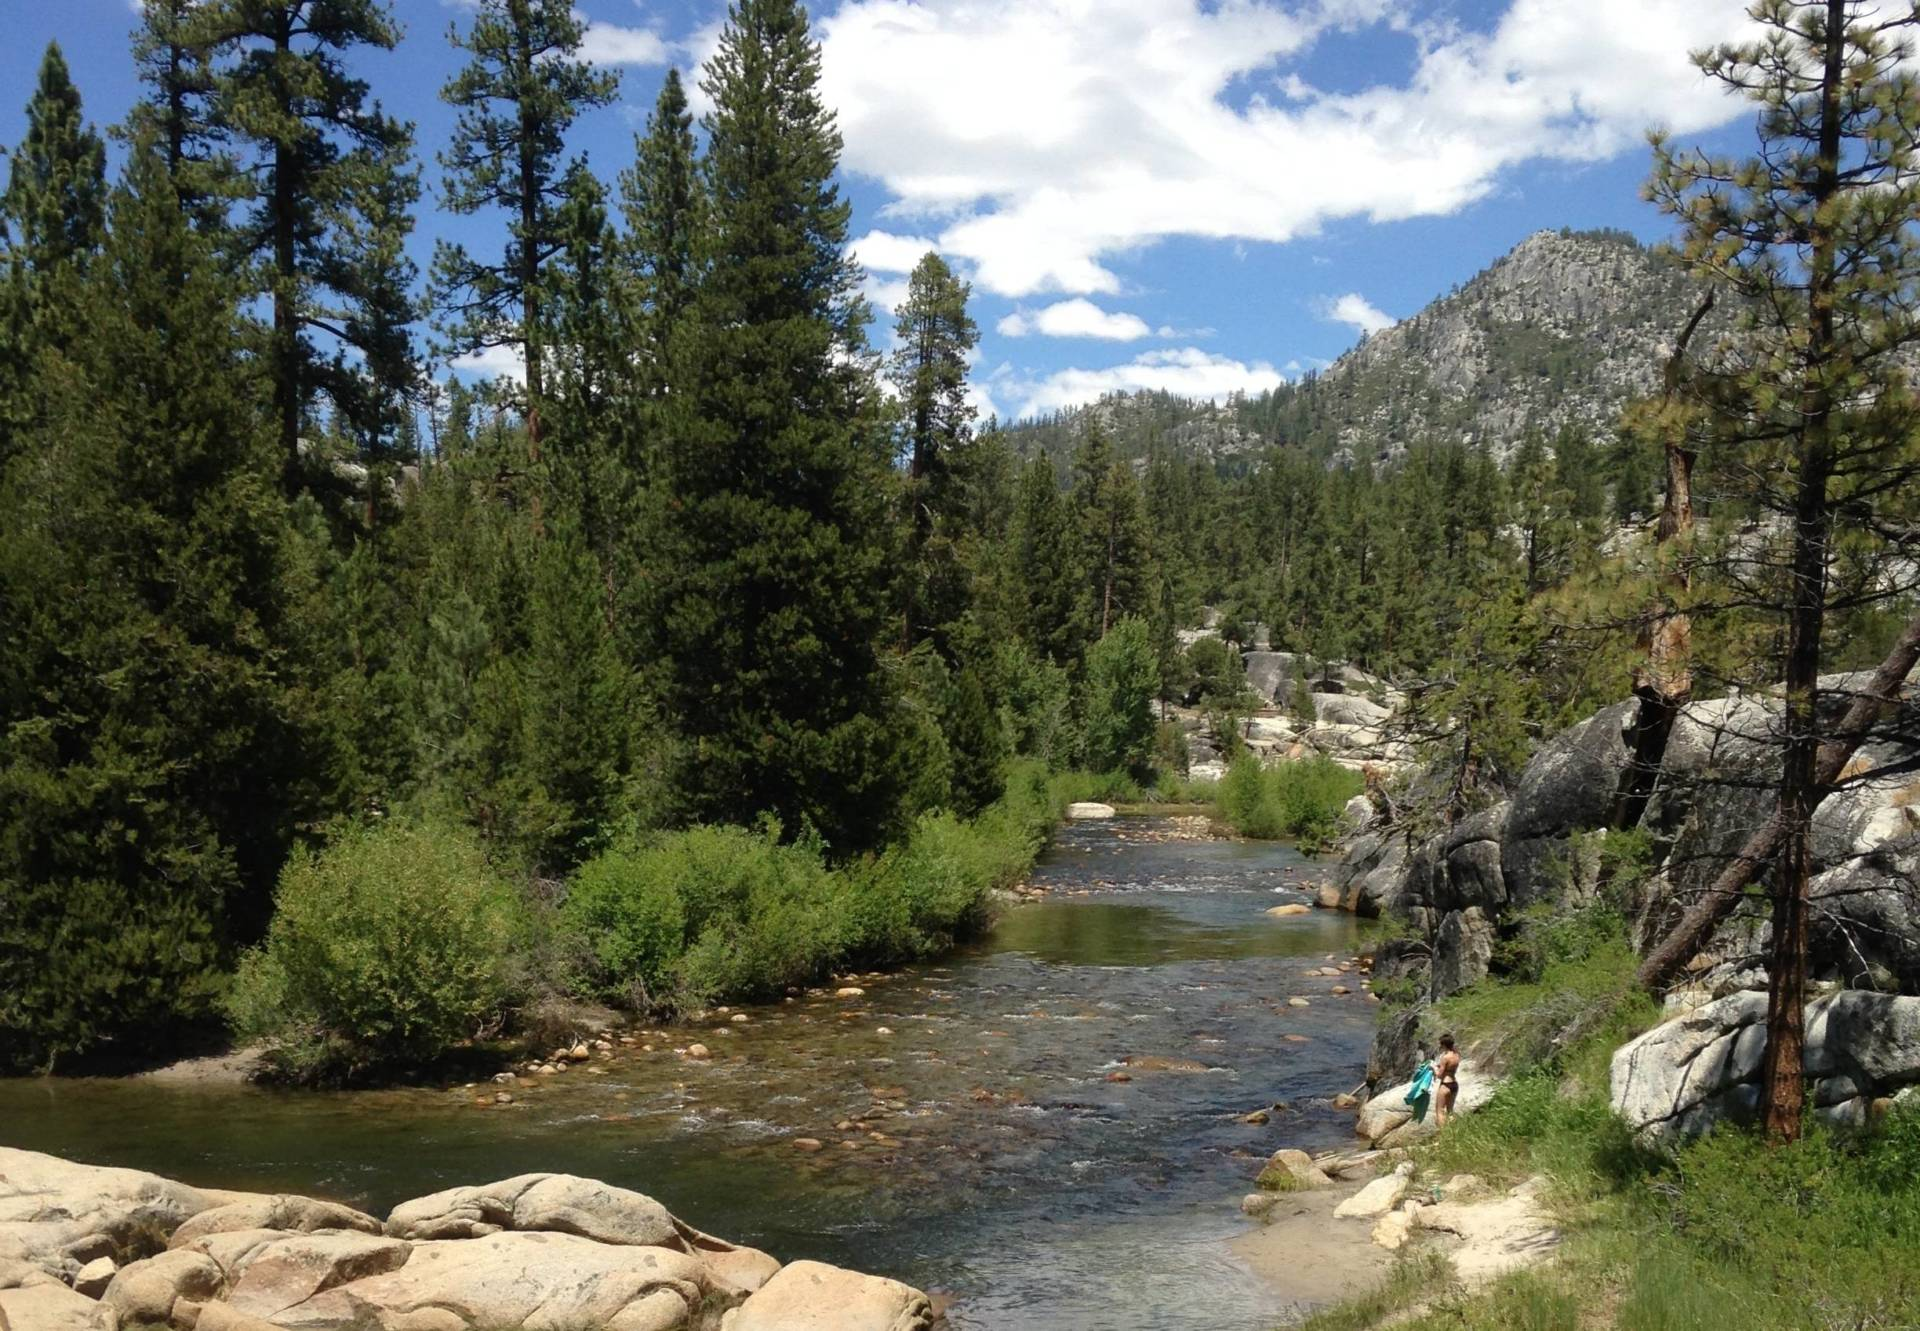 The San Joaquin River runs through Mono Hot Springs.